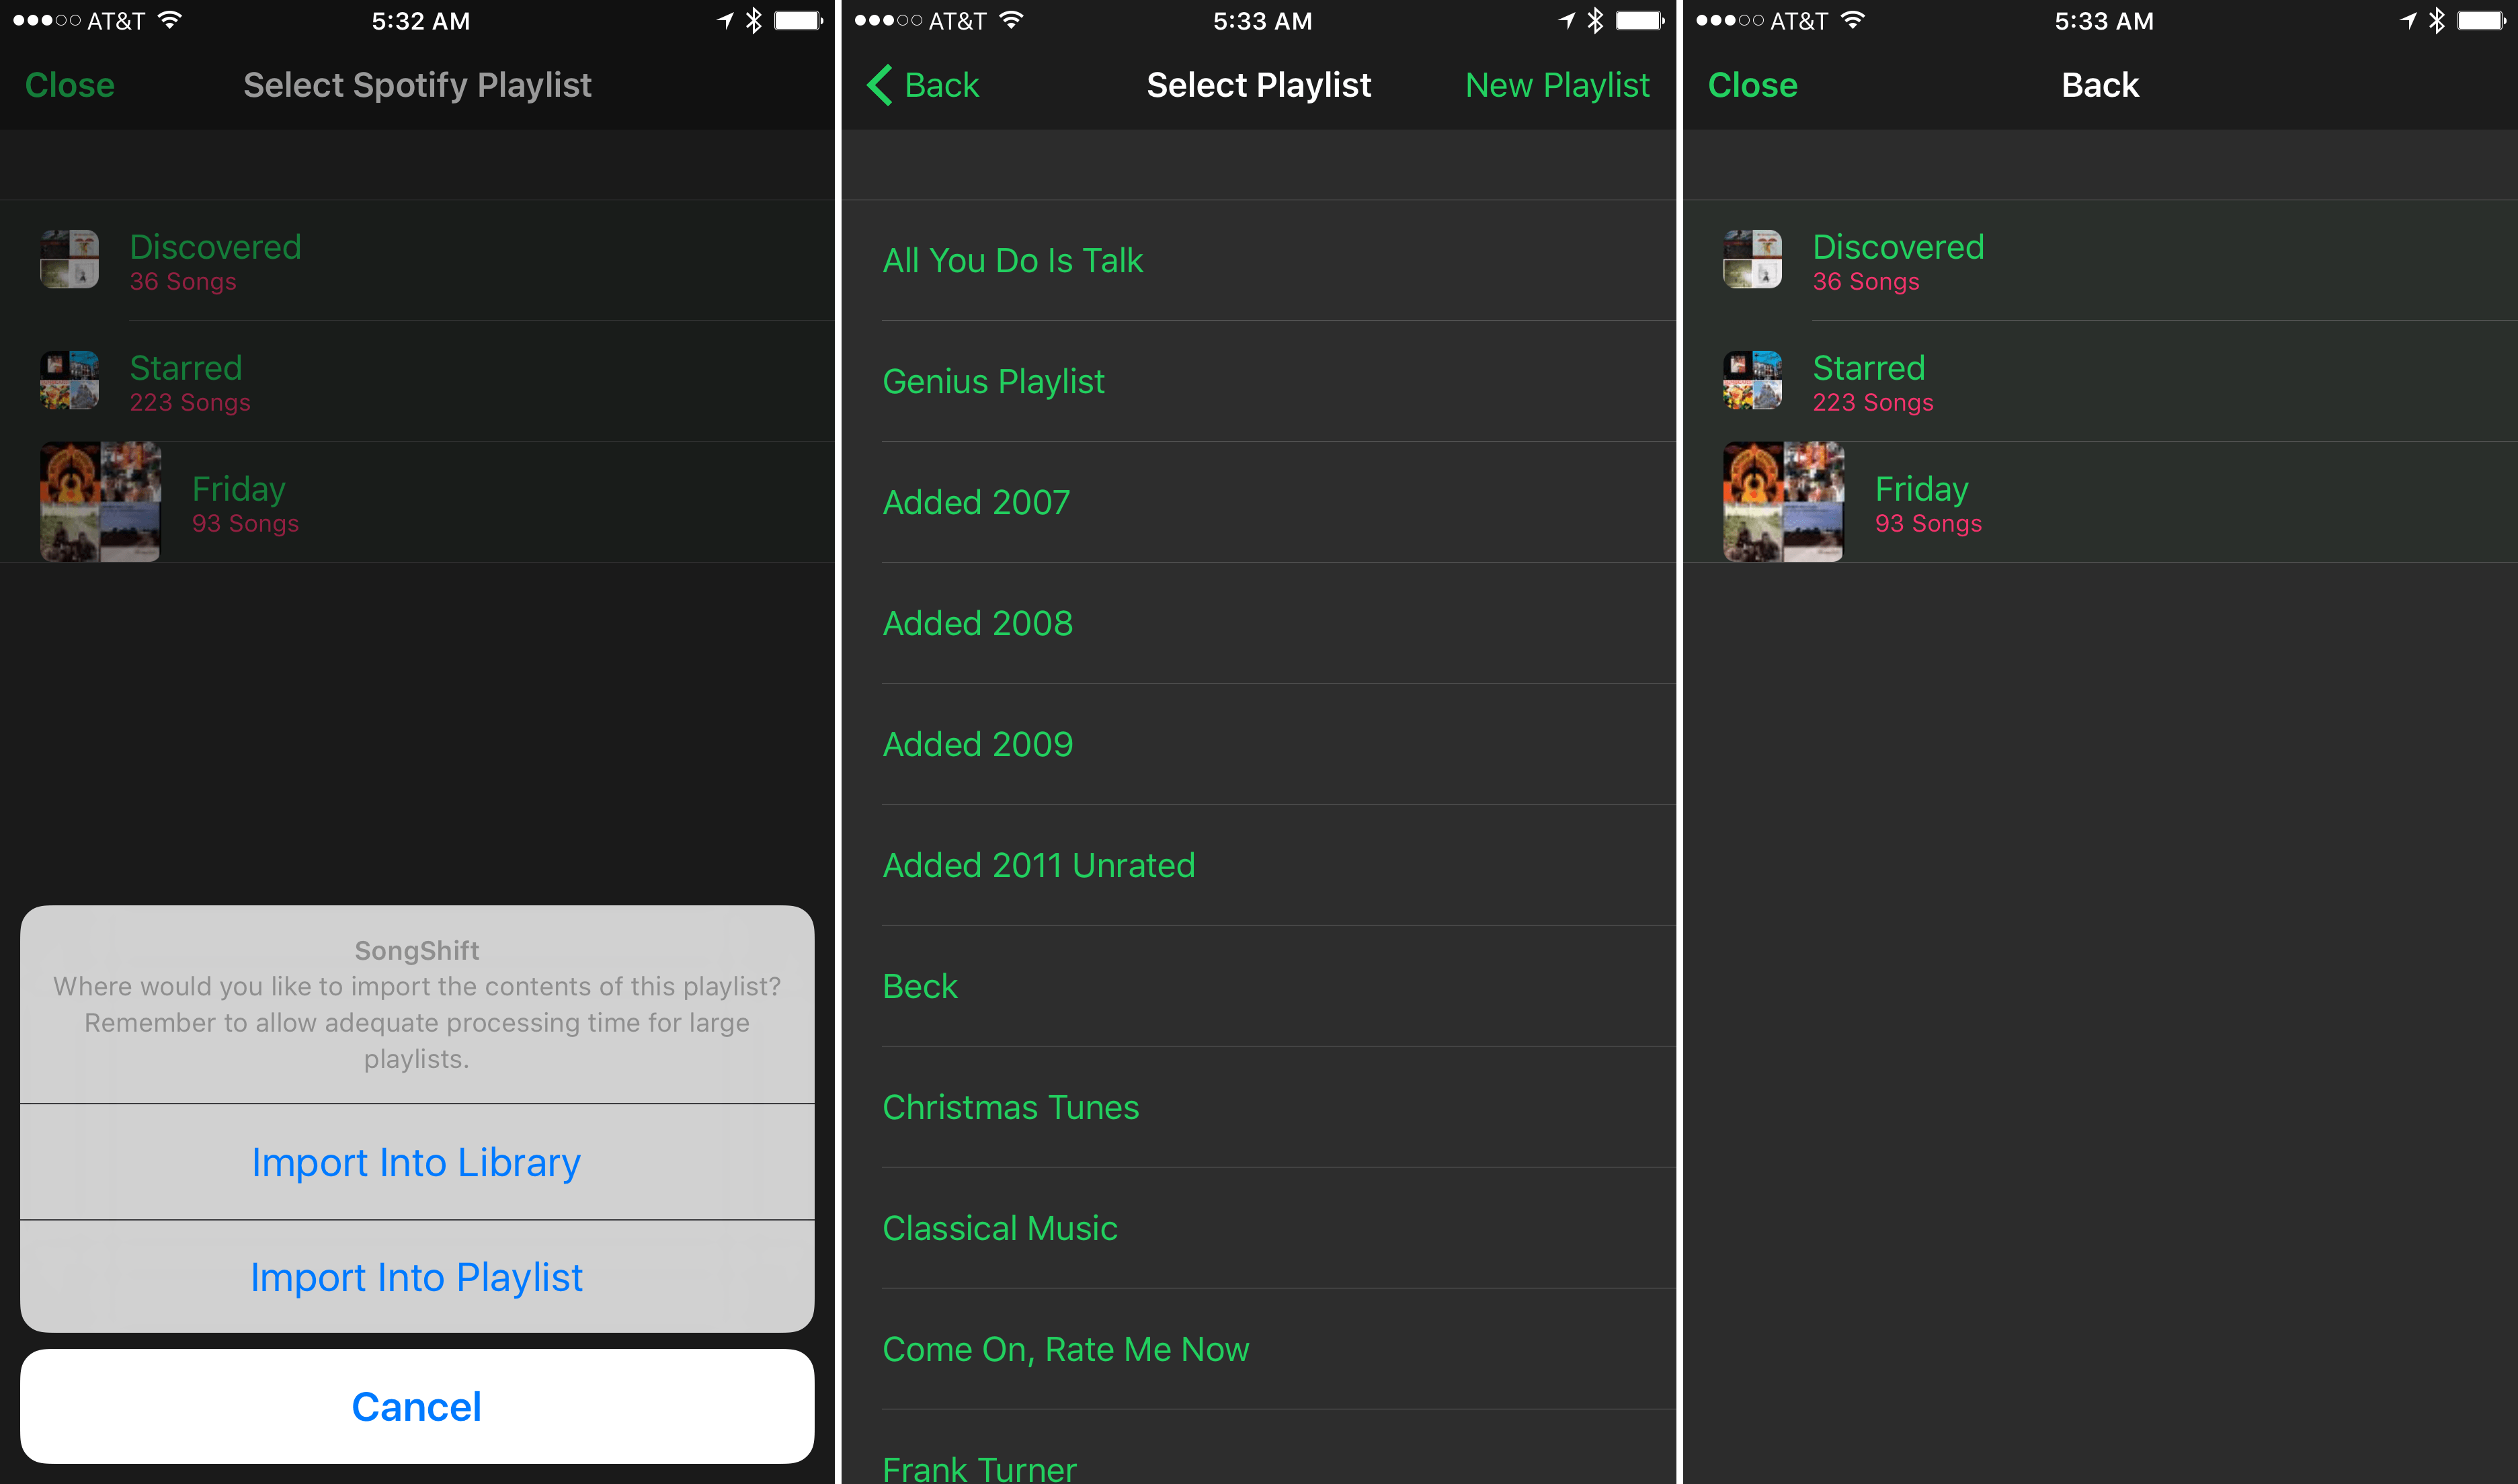 Importing songs from Spotify to Apple Music.